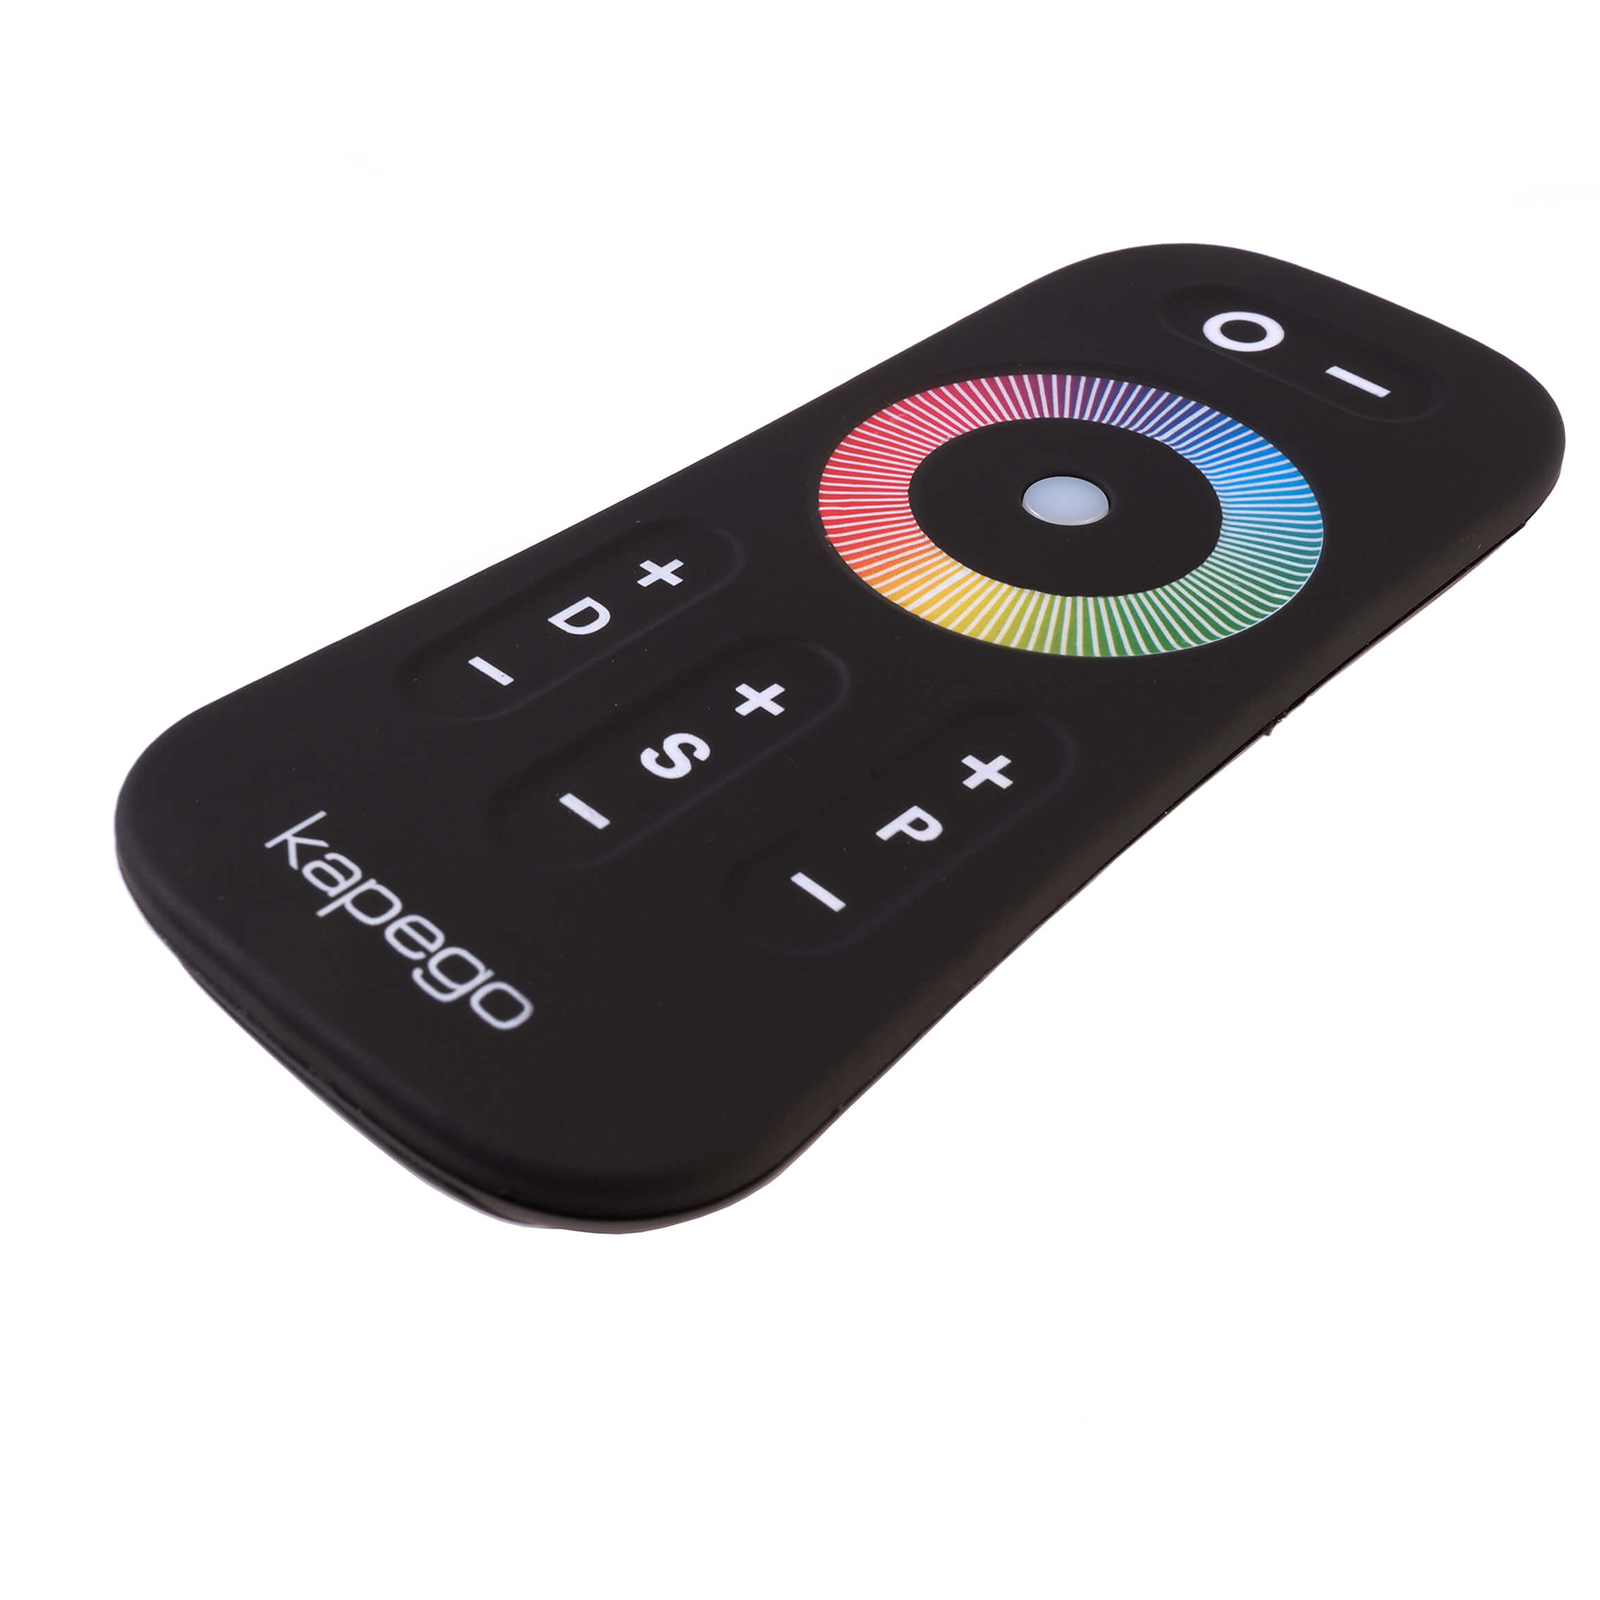 Touch remote RF RGB remote control for power strips multi-color LED